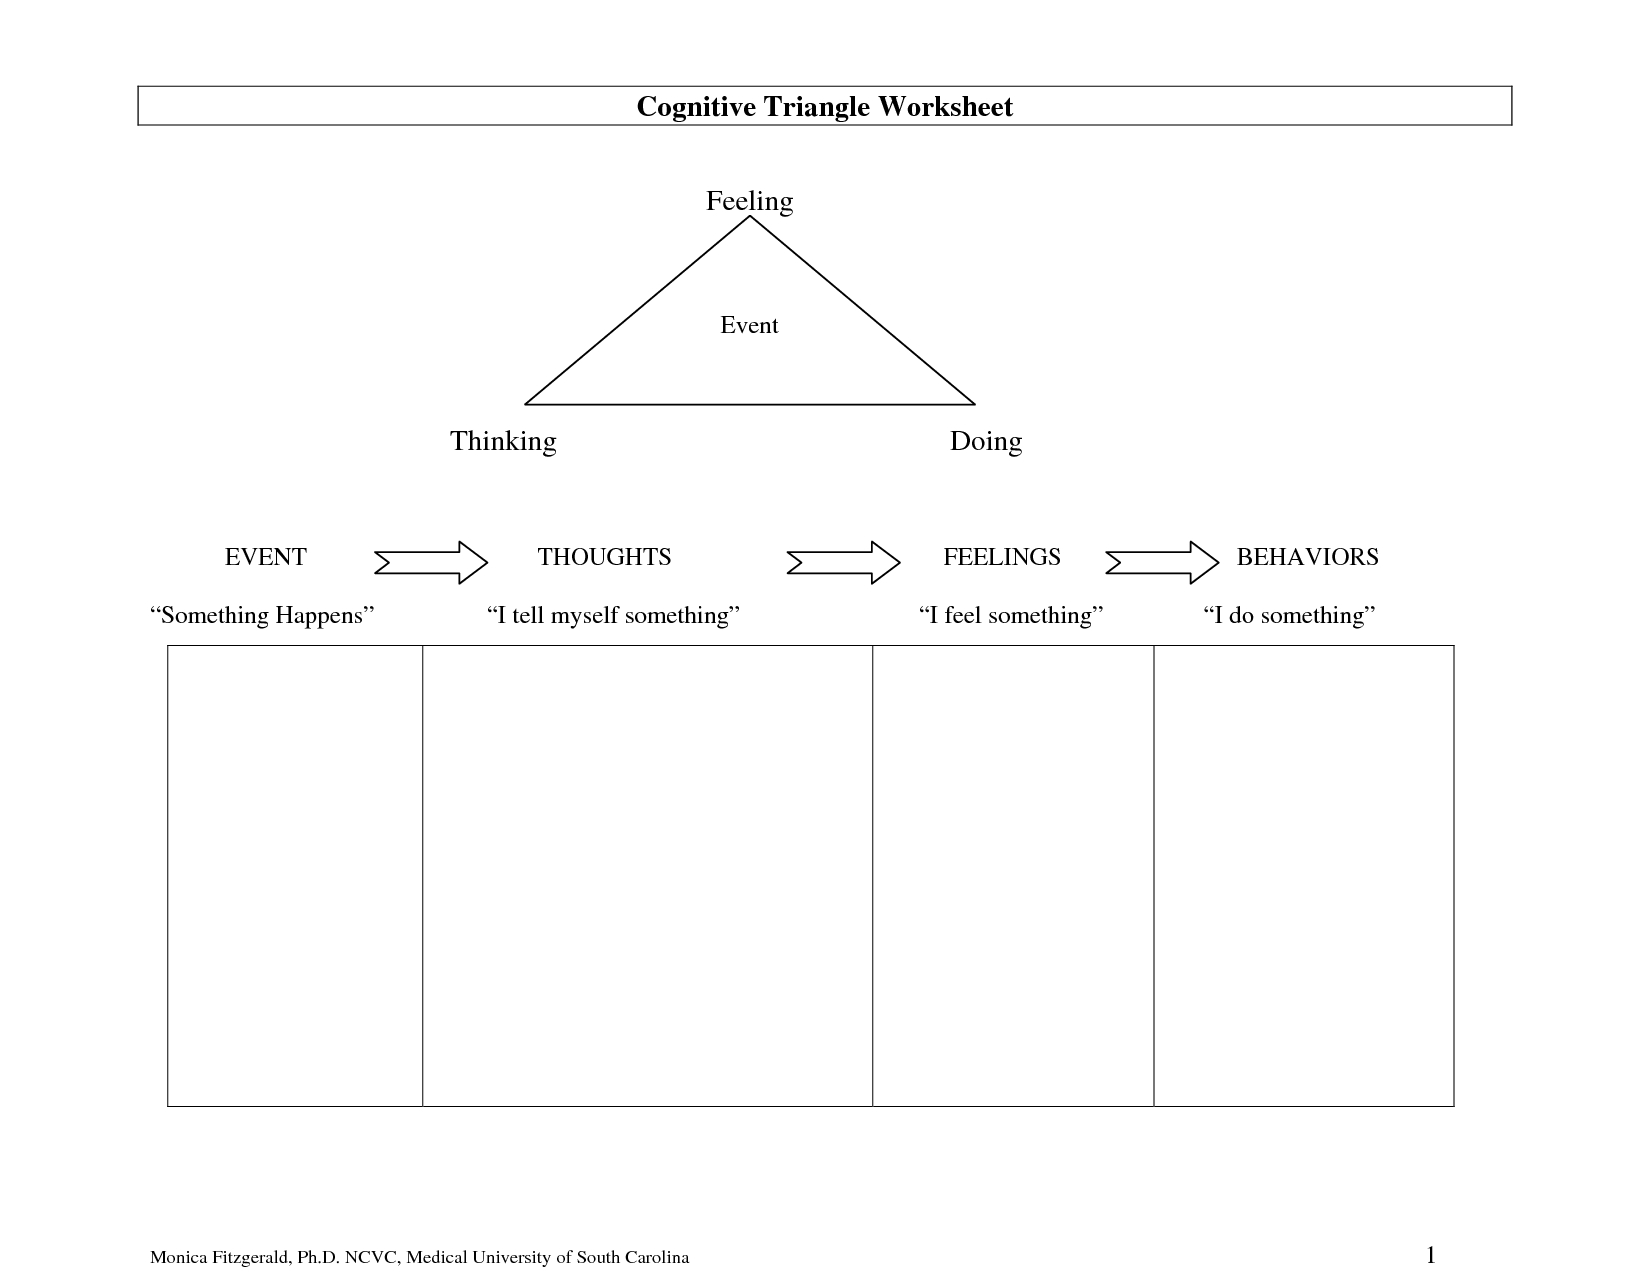 Creative Clinical Social Worker Downloadable Cognitive